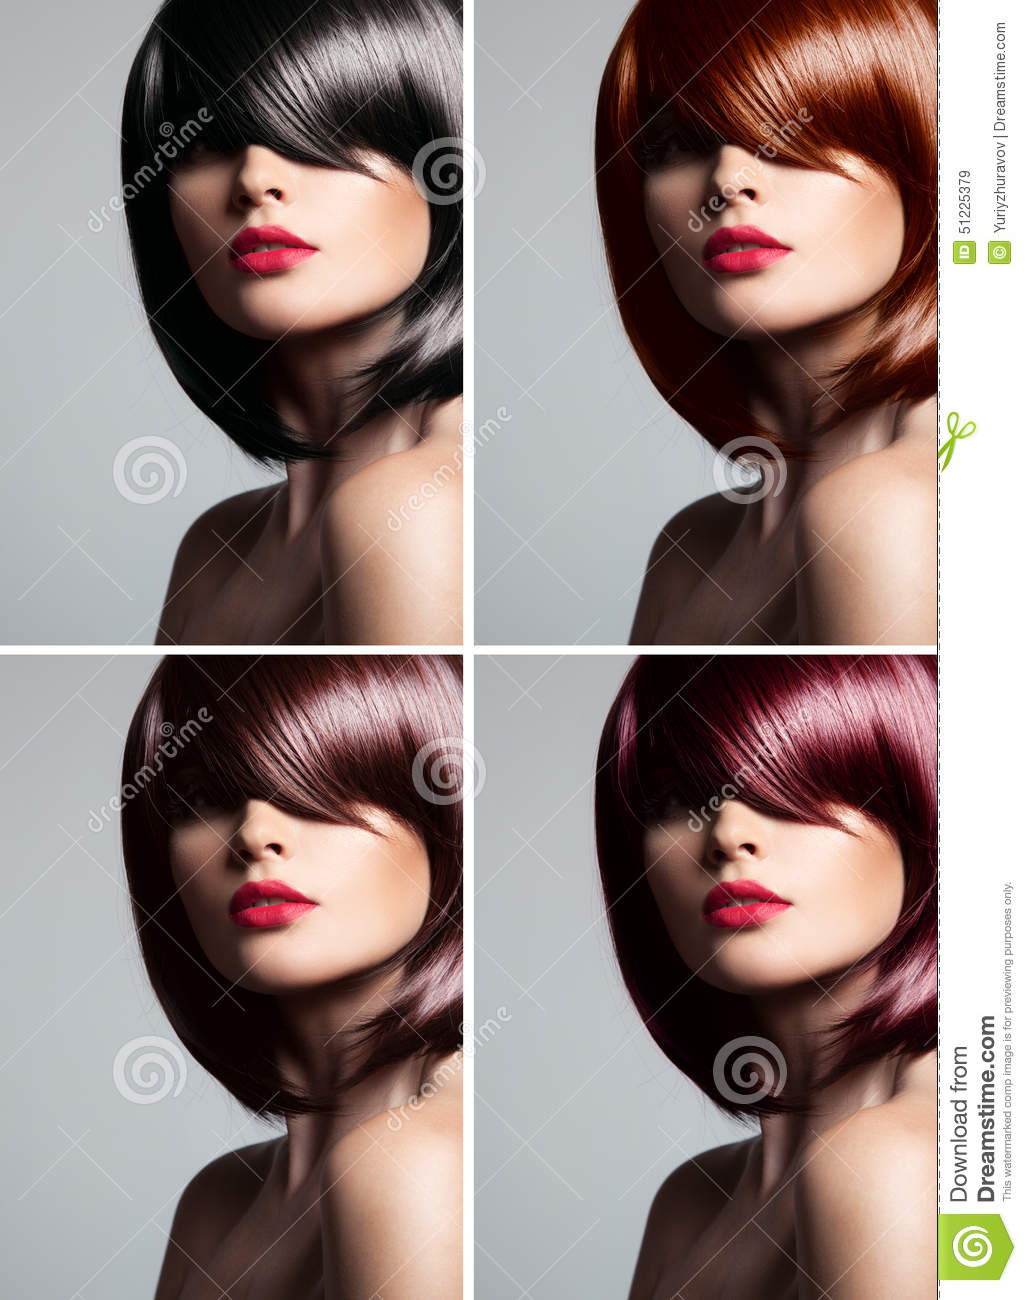 Collage Of A Beautiful Woman With Mixed Color Hair Stock Image